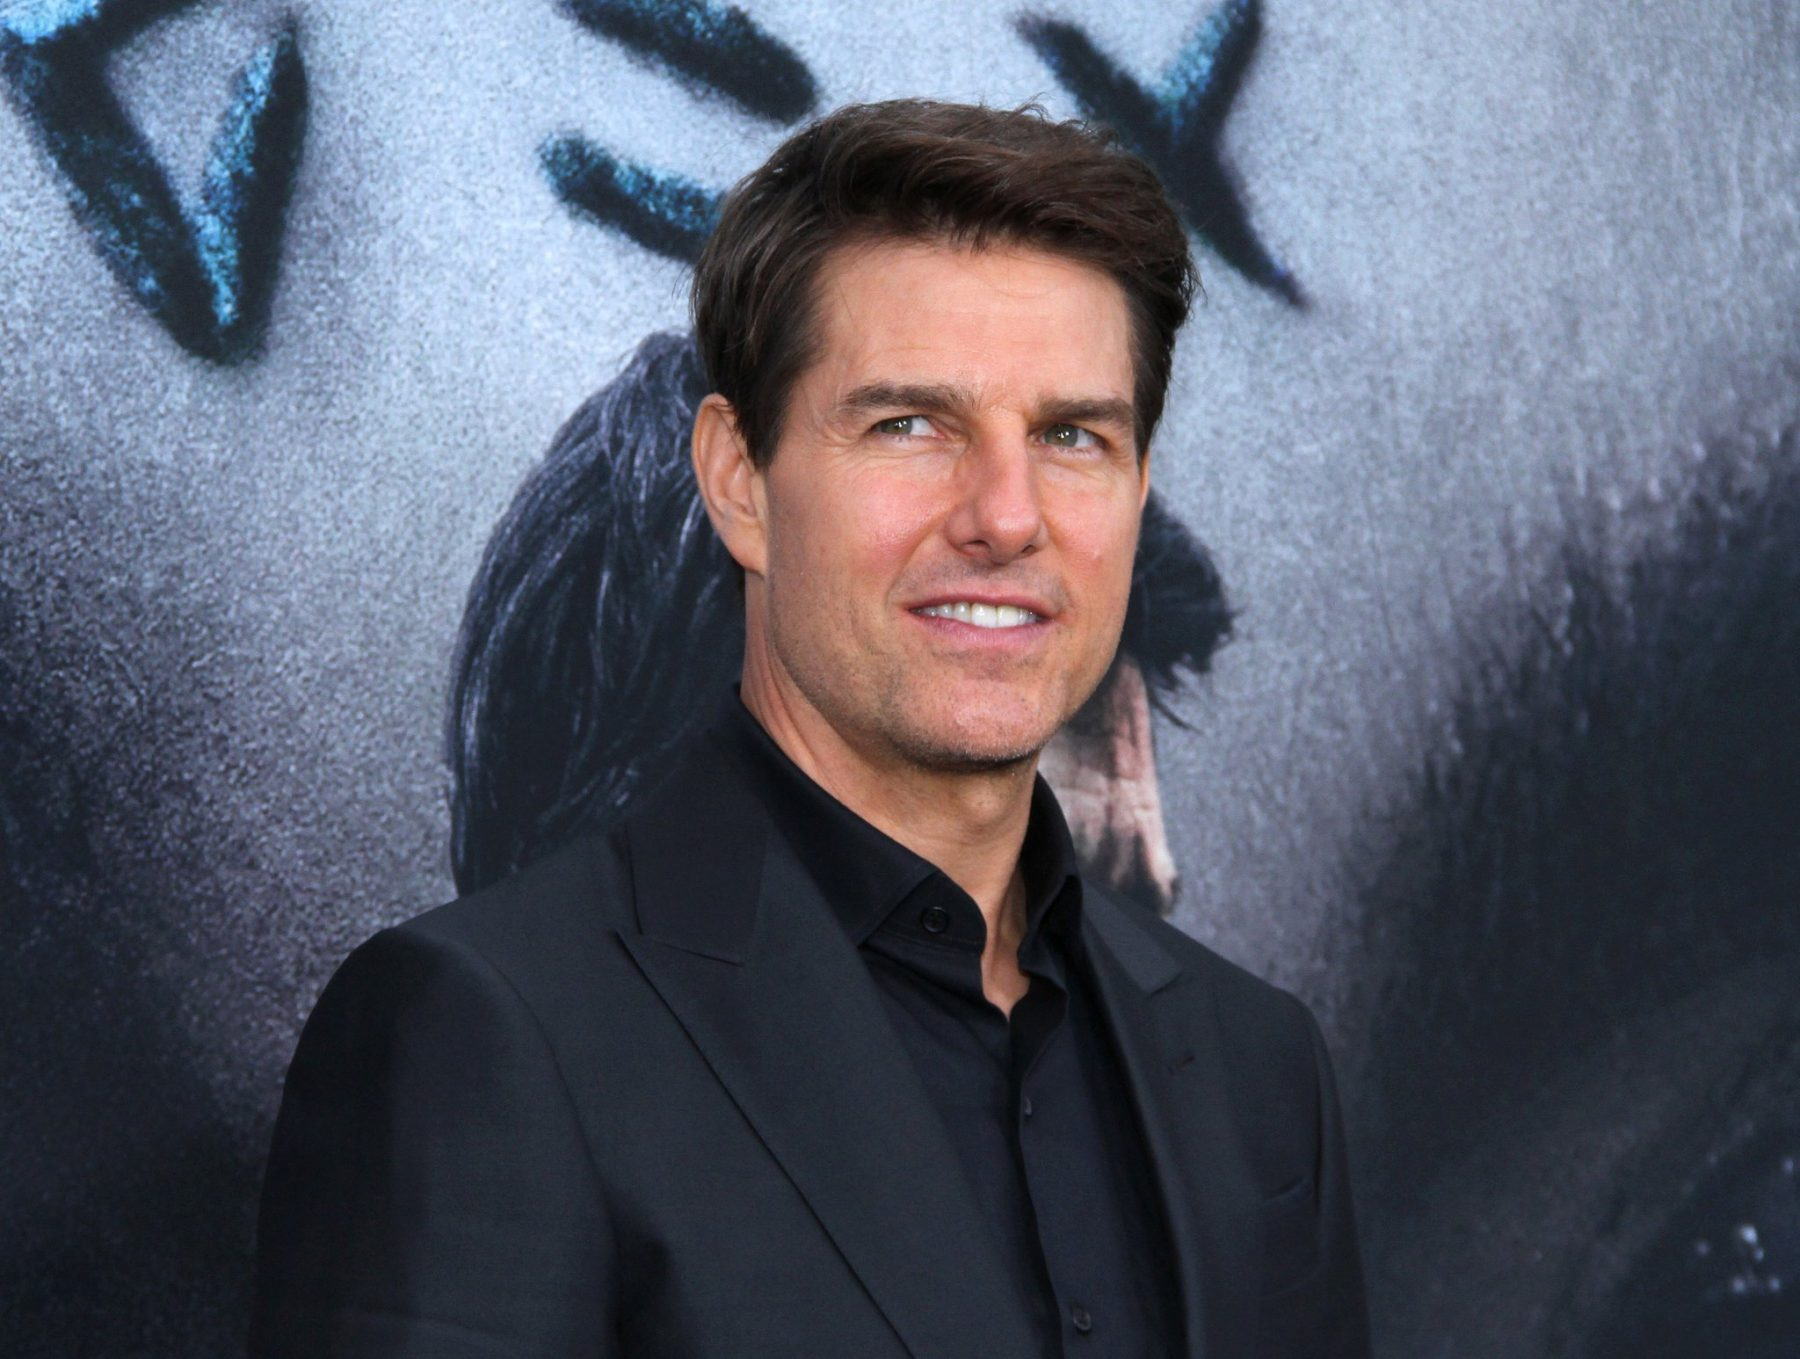 Mission Impossible Fallout Hd Wallpapers 7wallpapers Net